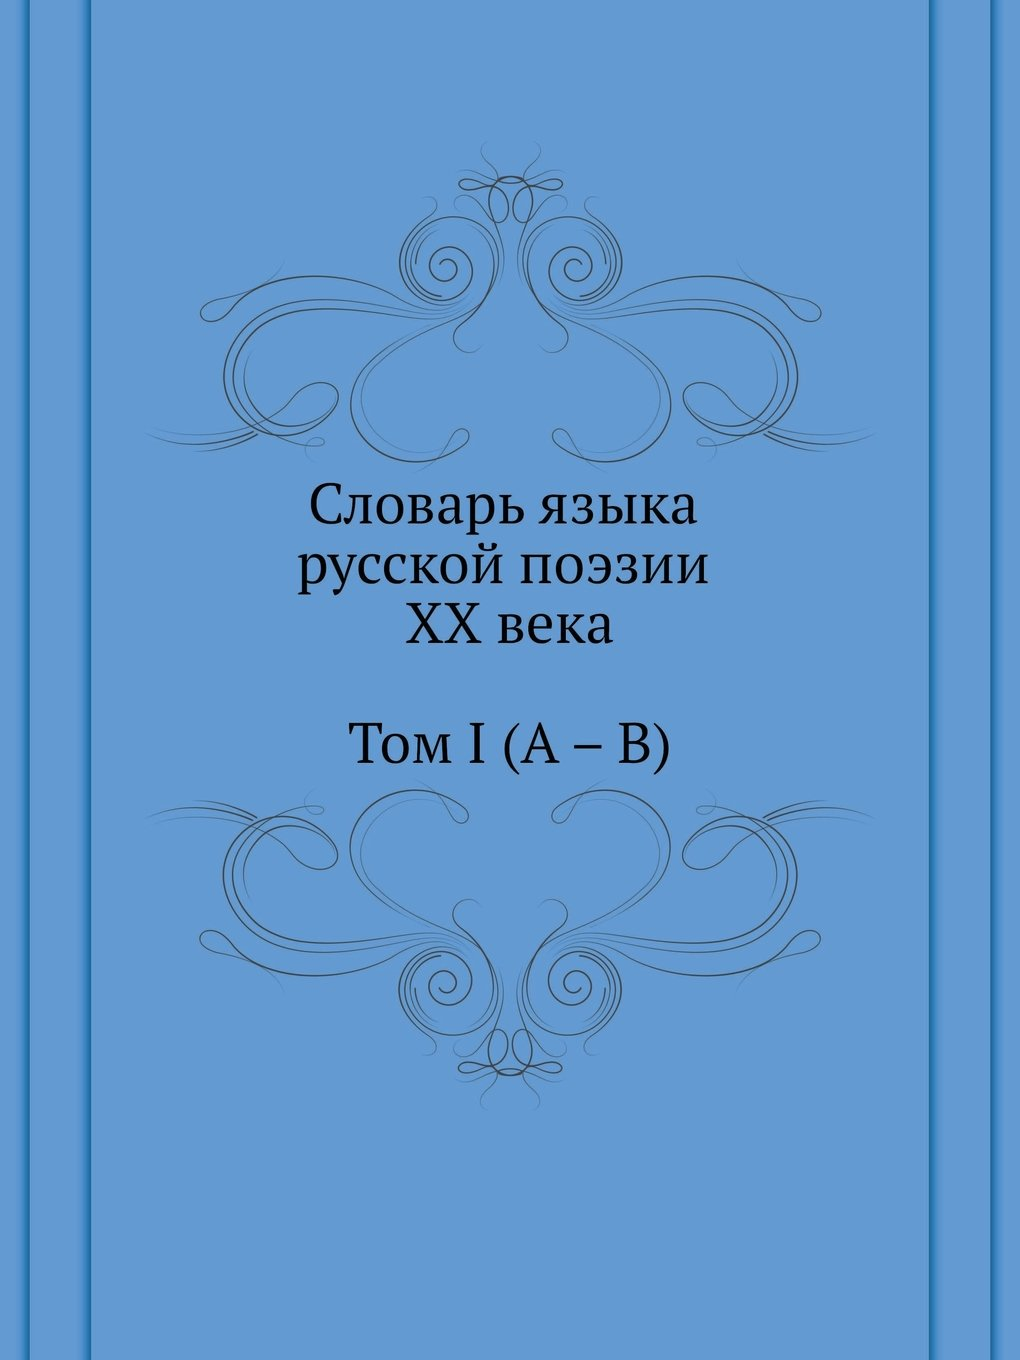 Dictionary of the language of russian of the XX century. Volume I (A - B) (Studia philologica) (Russian Edition) pdf